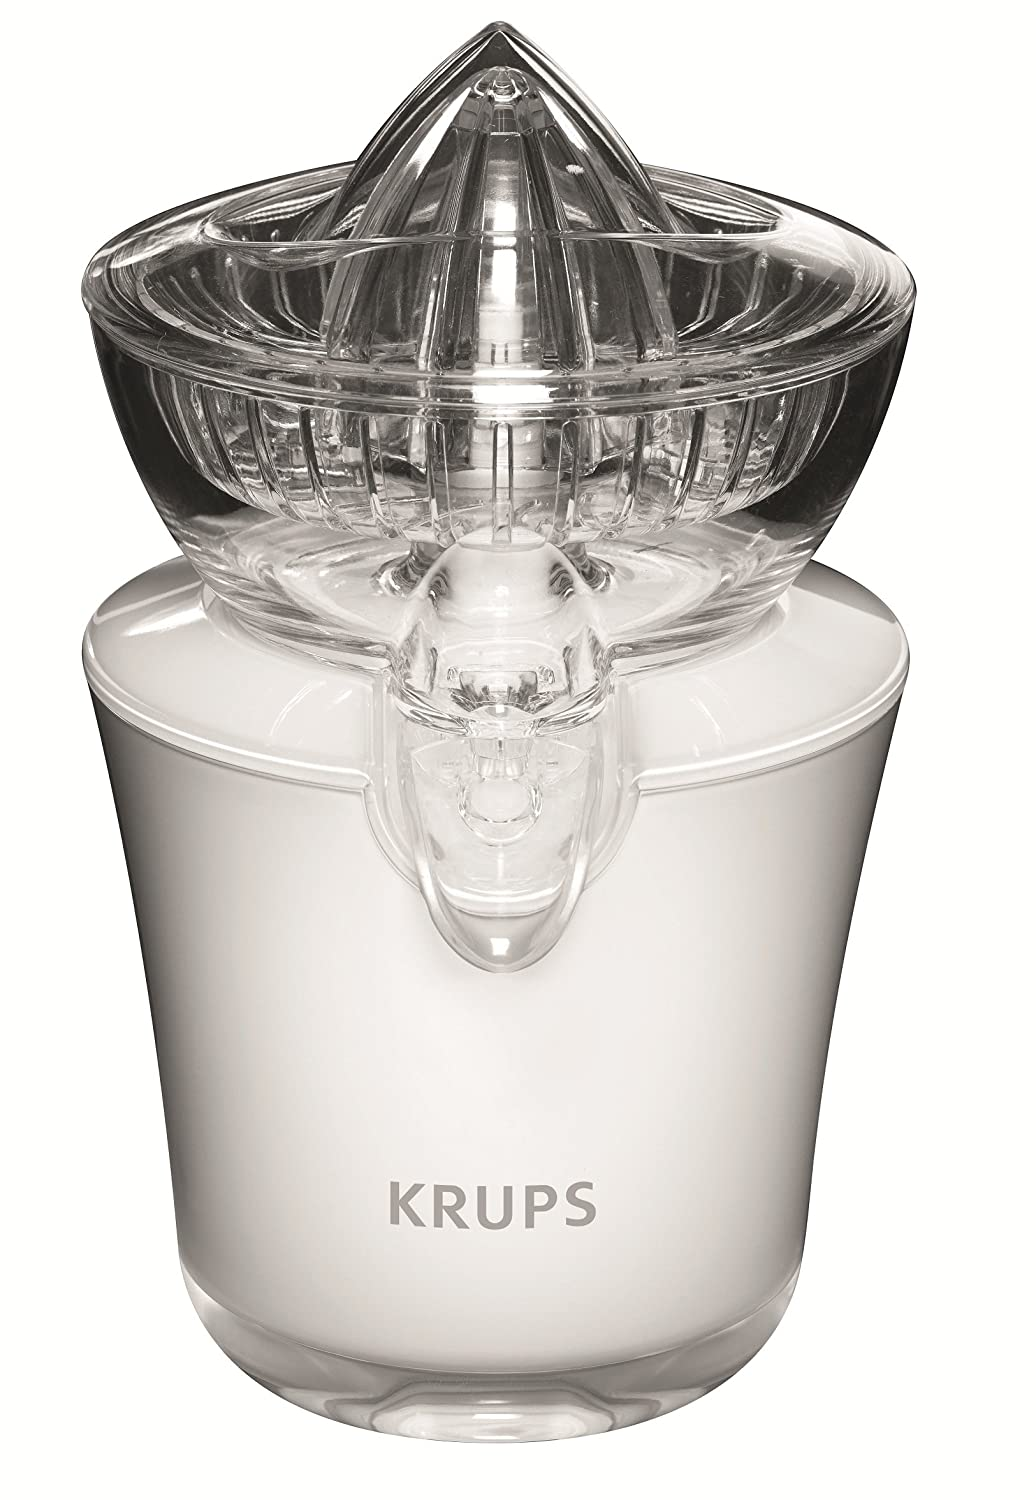 KRUPS ZX7201 Electric Acrylic Citrus Juicer with Automatic Fruit Pressure Detection, White